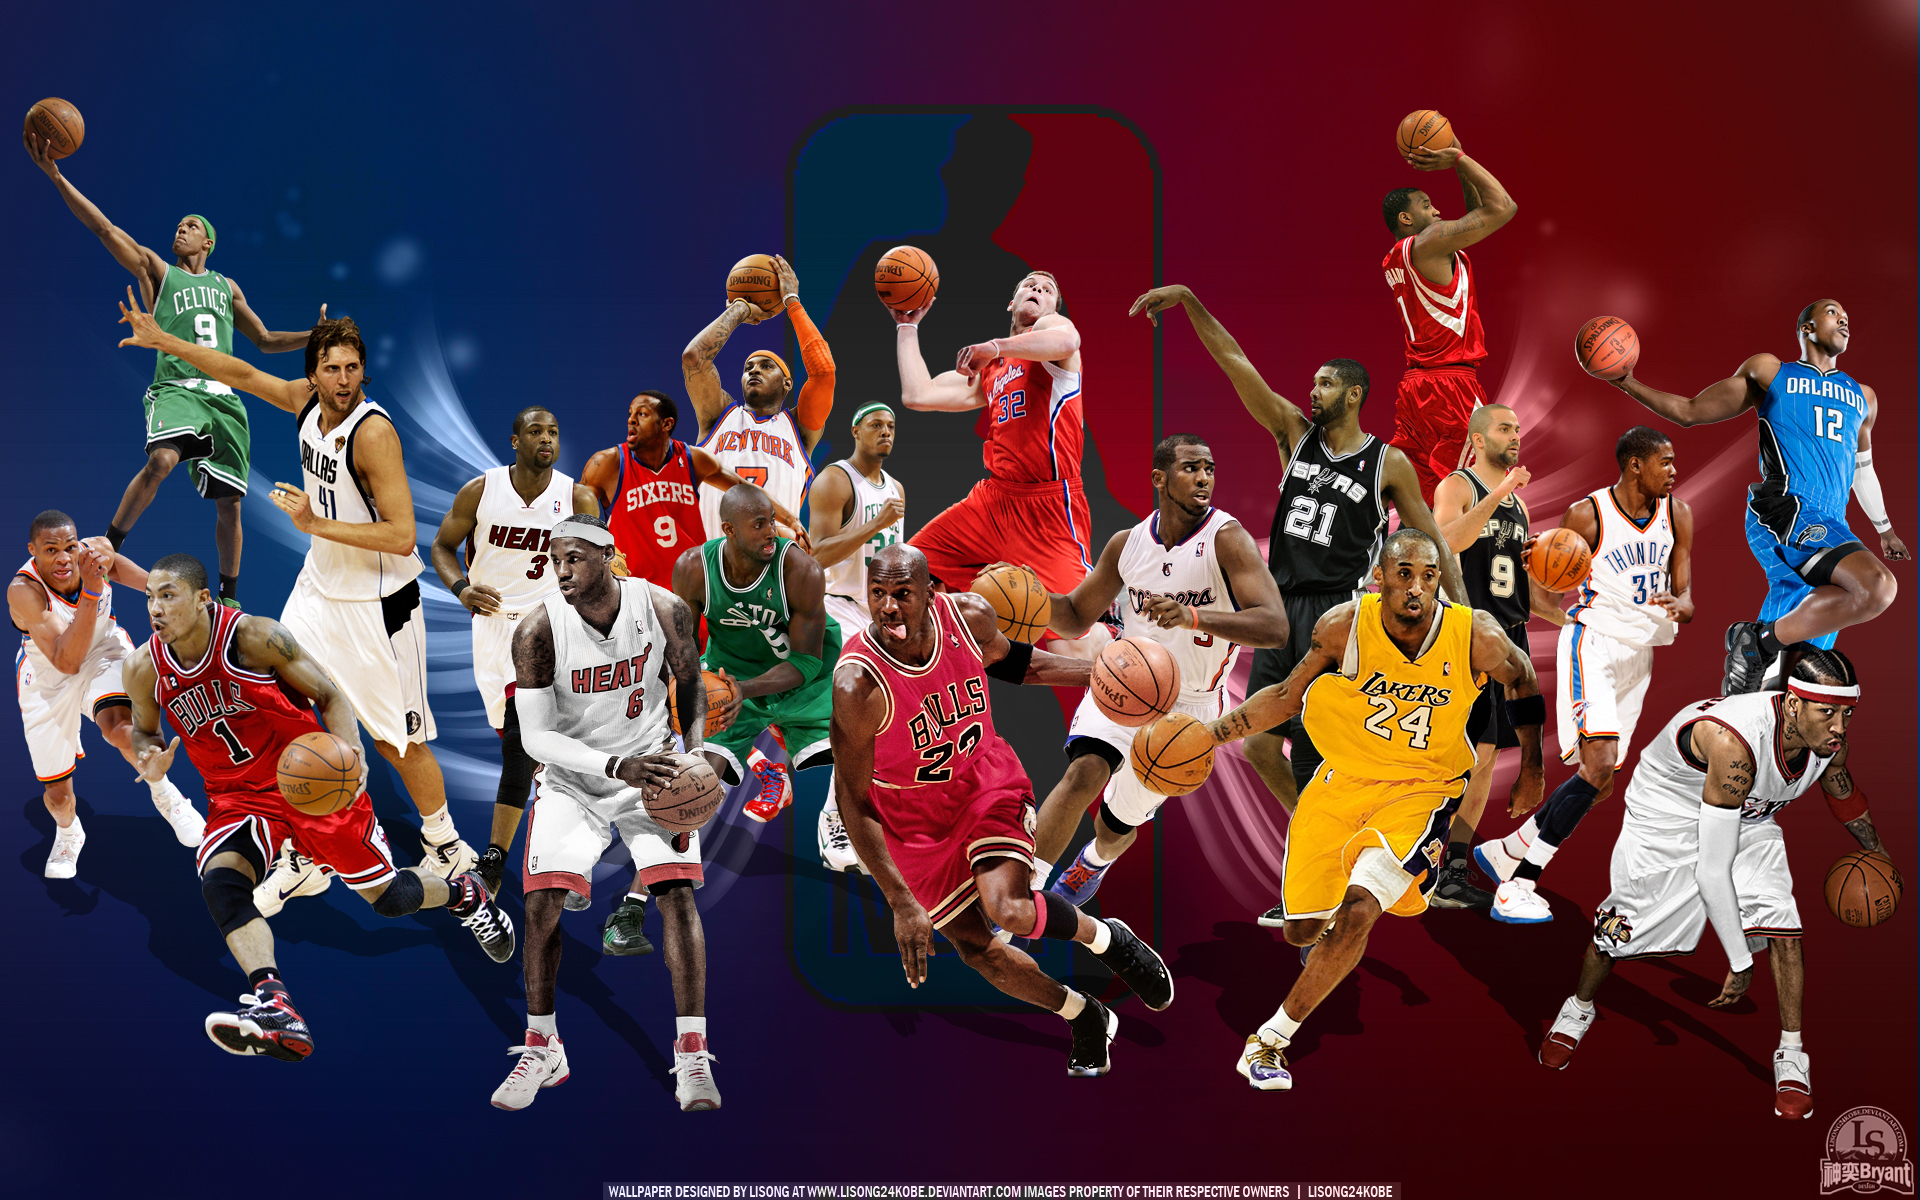 FunMozar NBA Wallpaper Desktop Basketball Wallpapers 1920x1200